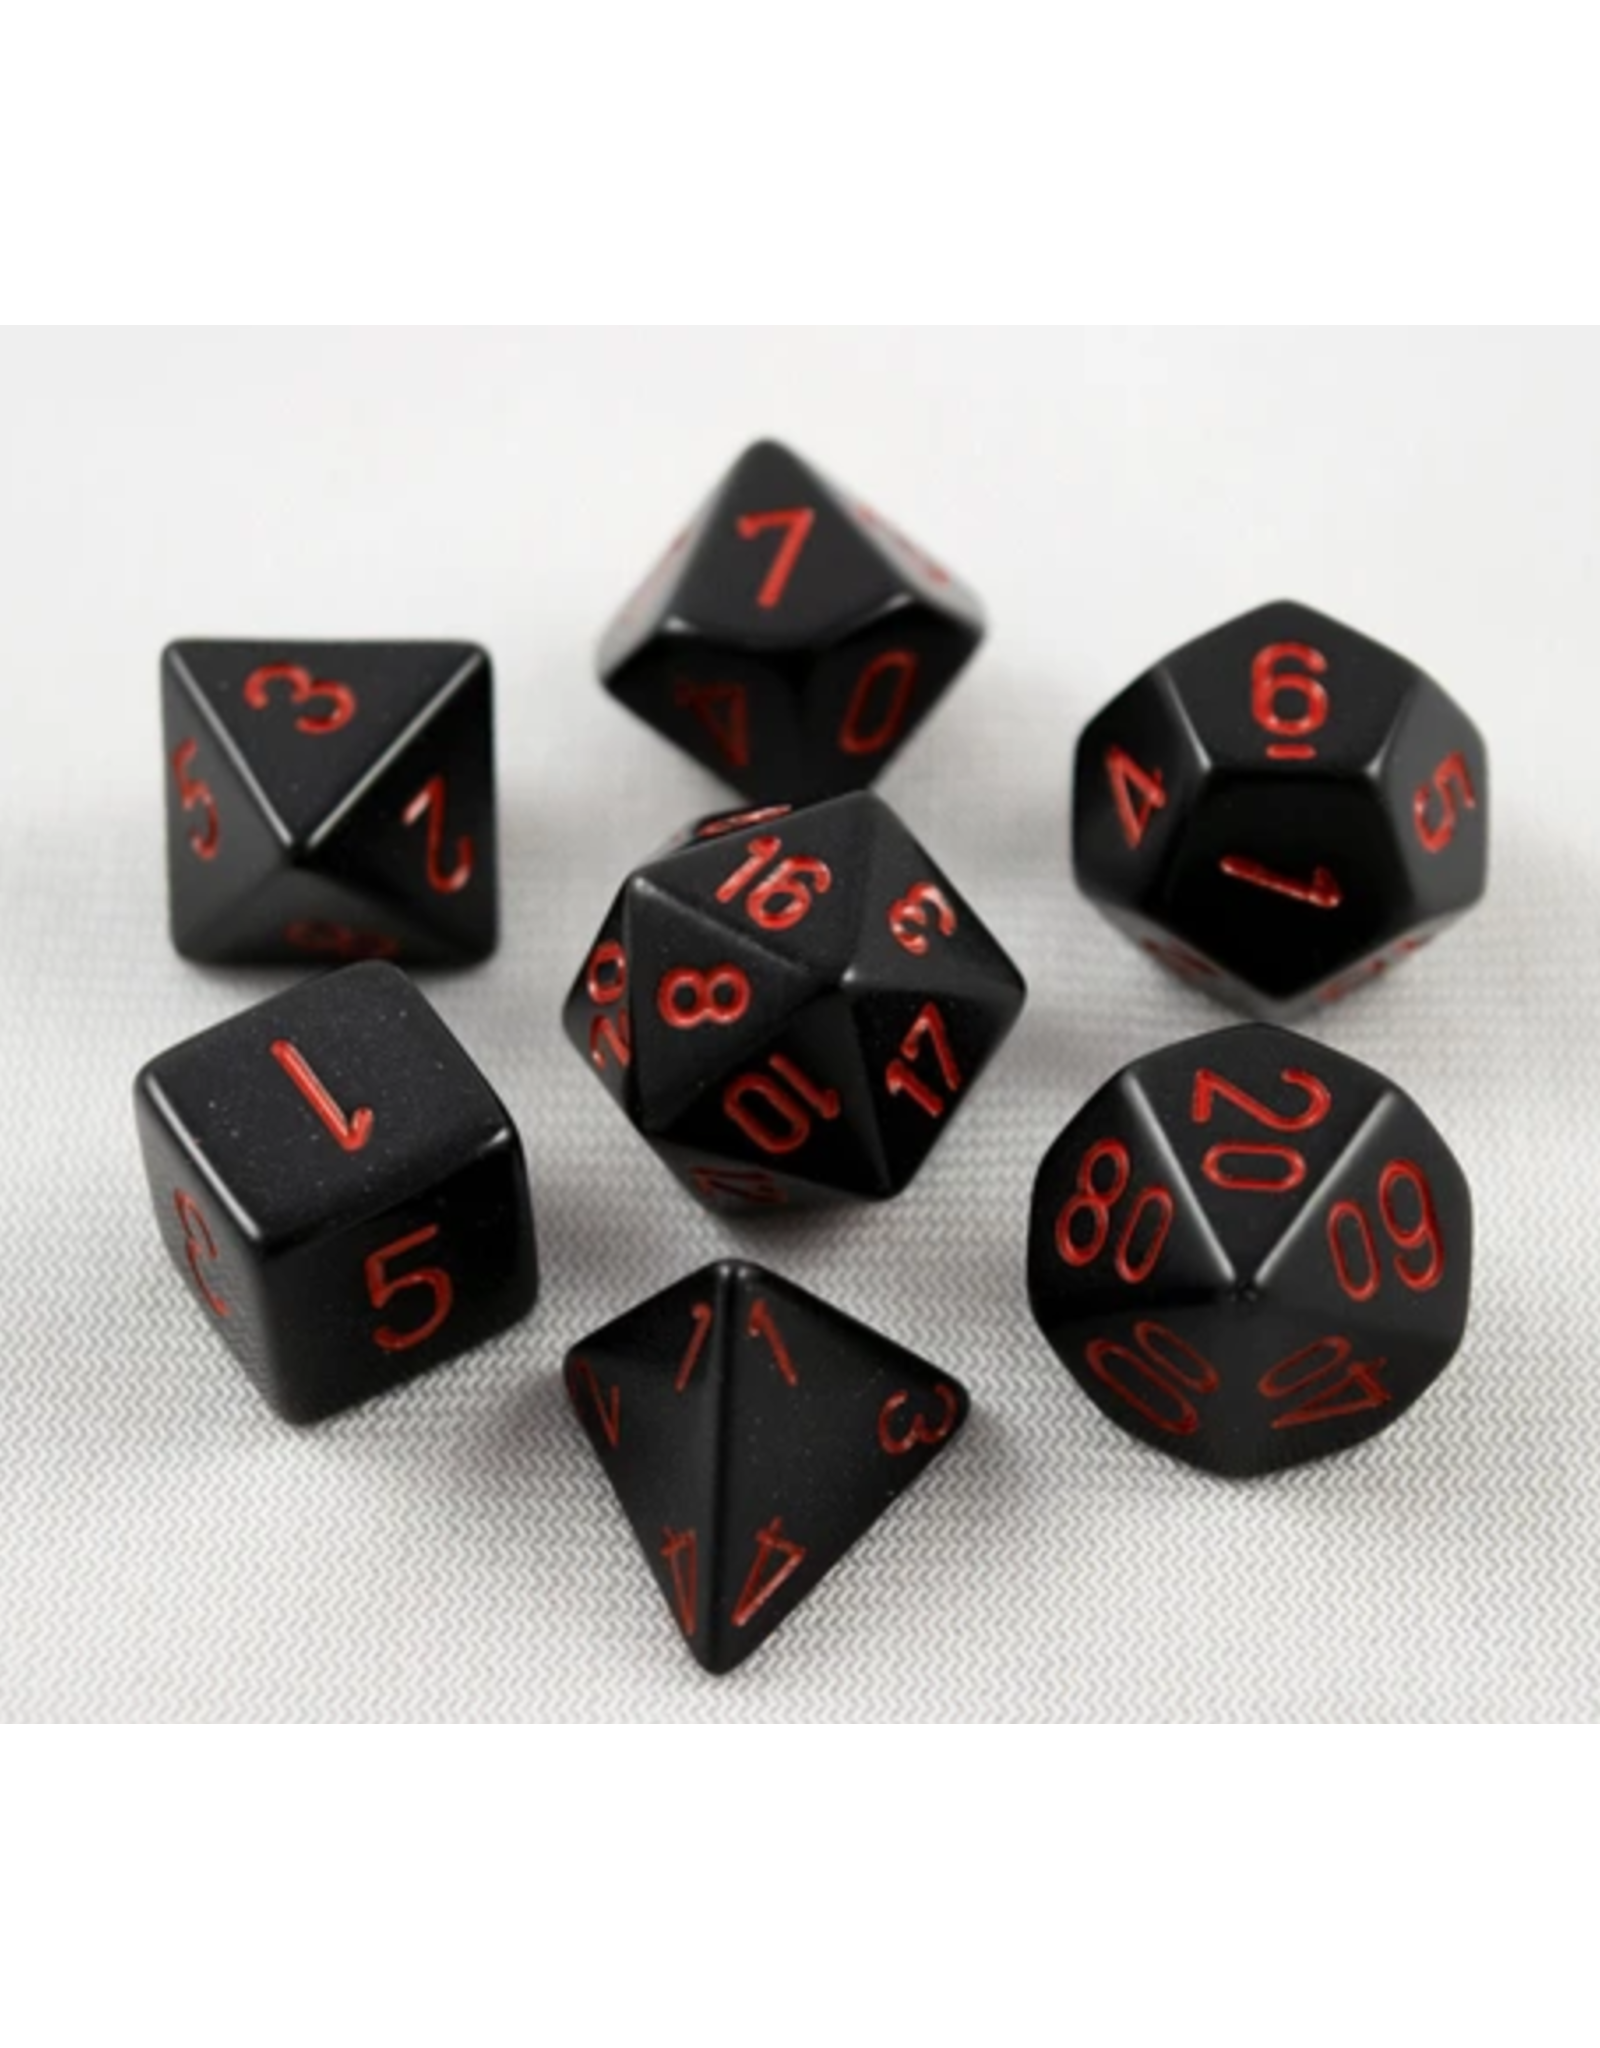 Chessex 7-Set Polyhedral Black/Red